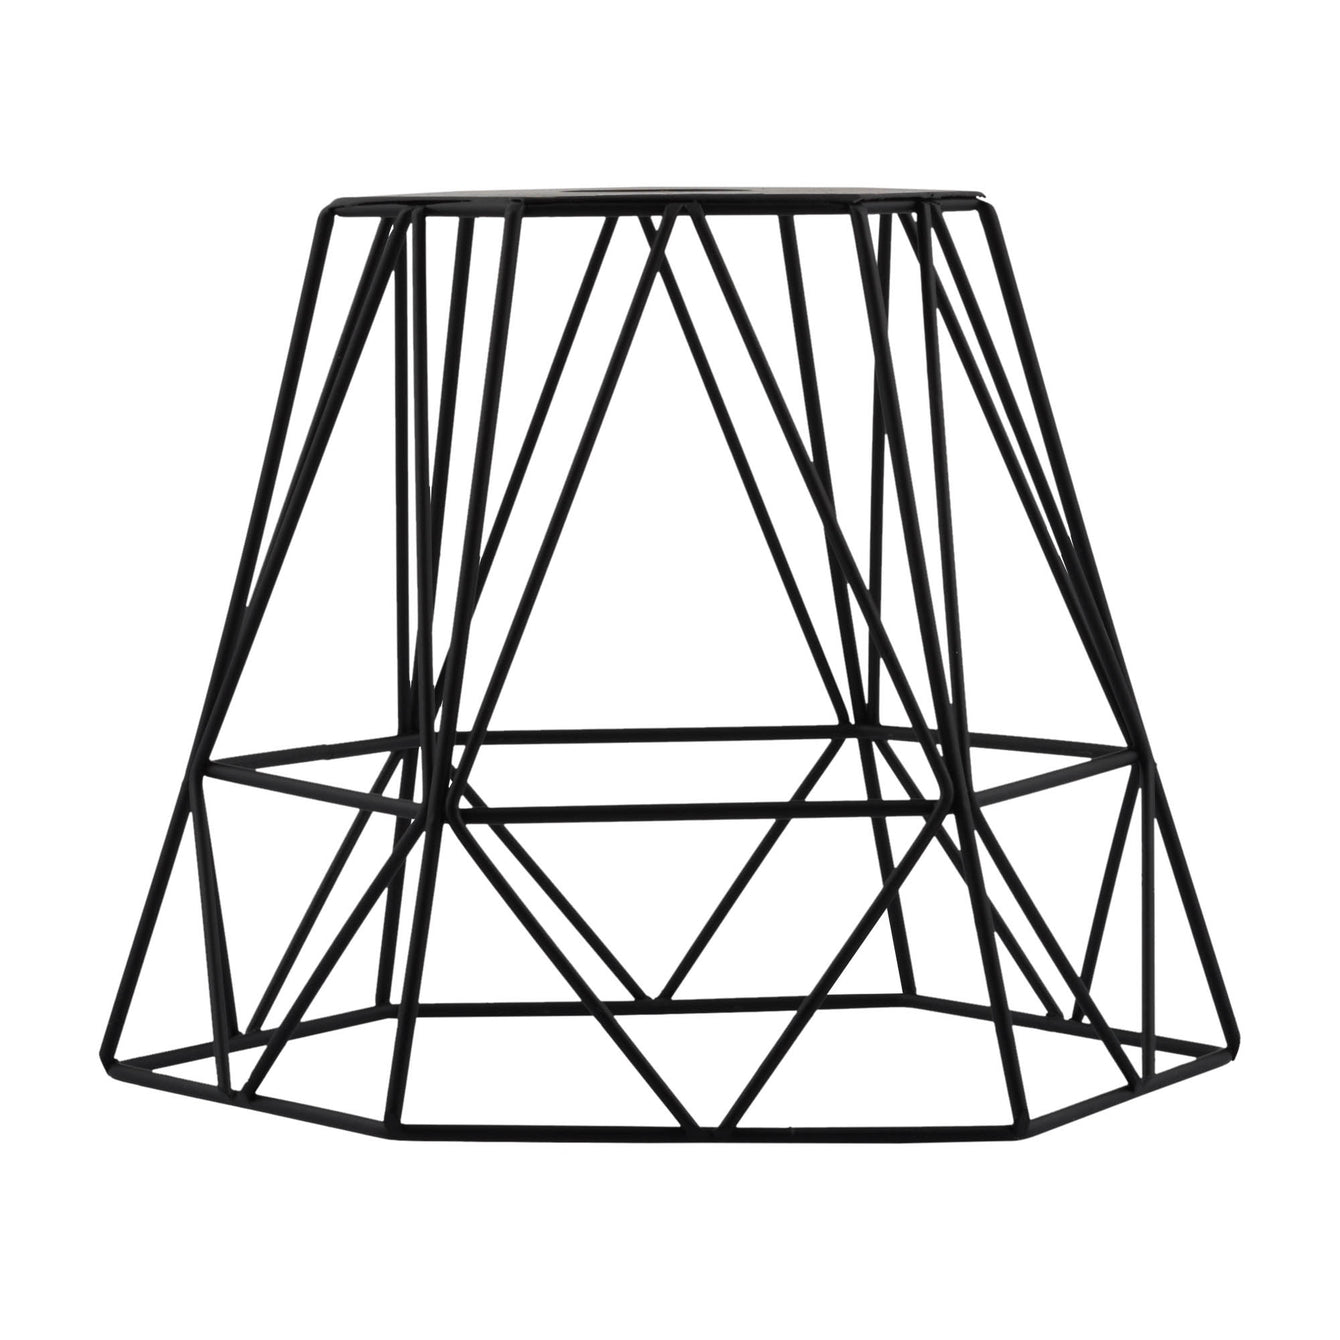 ElekTek Vintage Mora Hexagonal Medium Polyangle Cage Wire Frame Lamp Shade Colours - Buy It Better